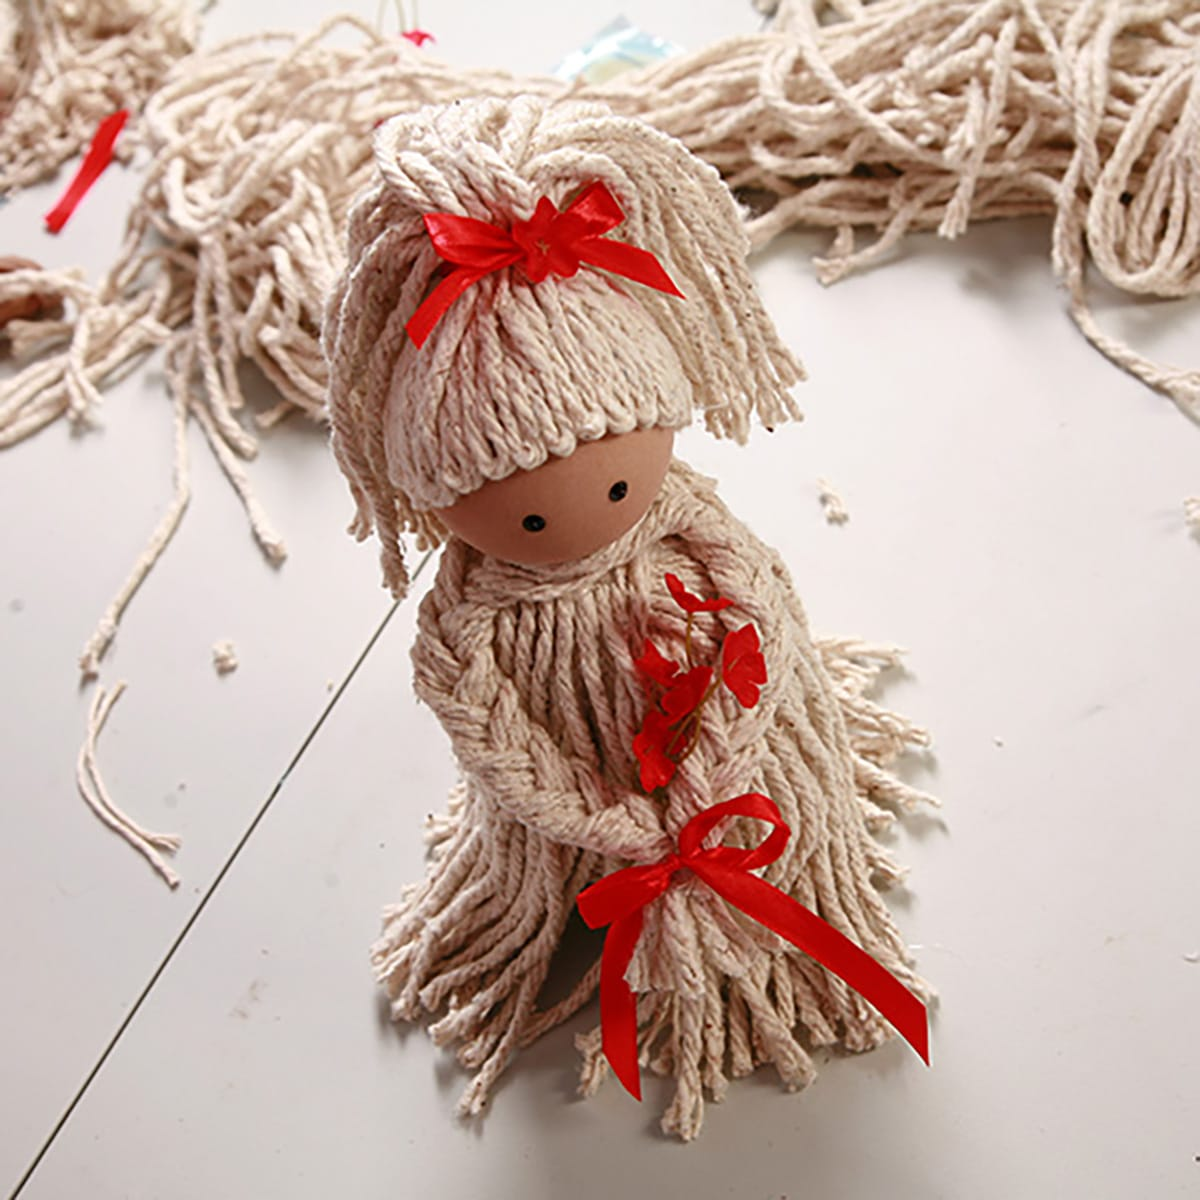 A finished mop doll air freshener on a work table.